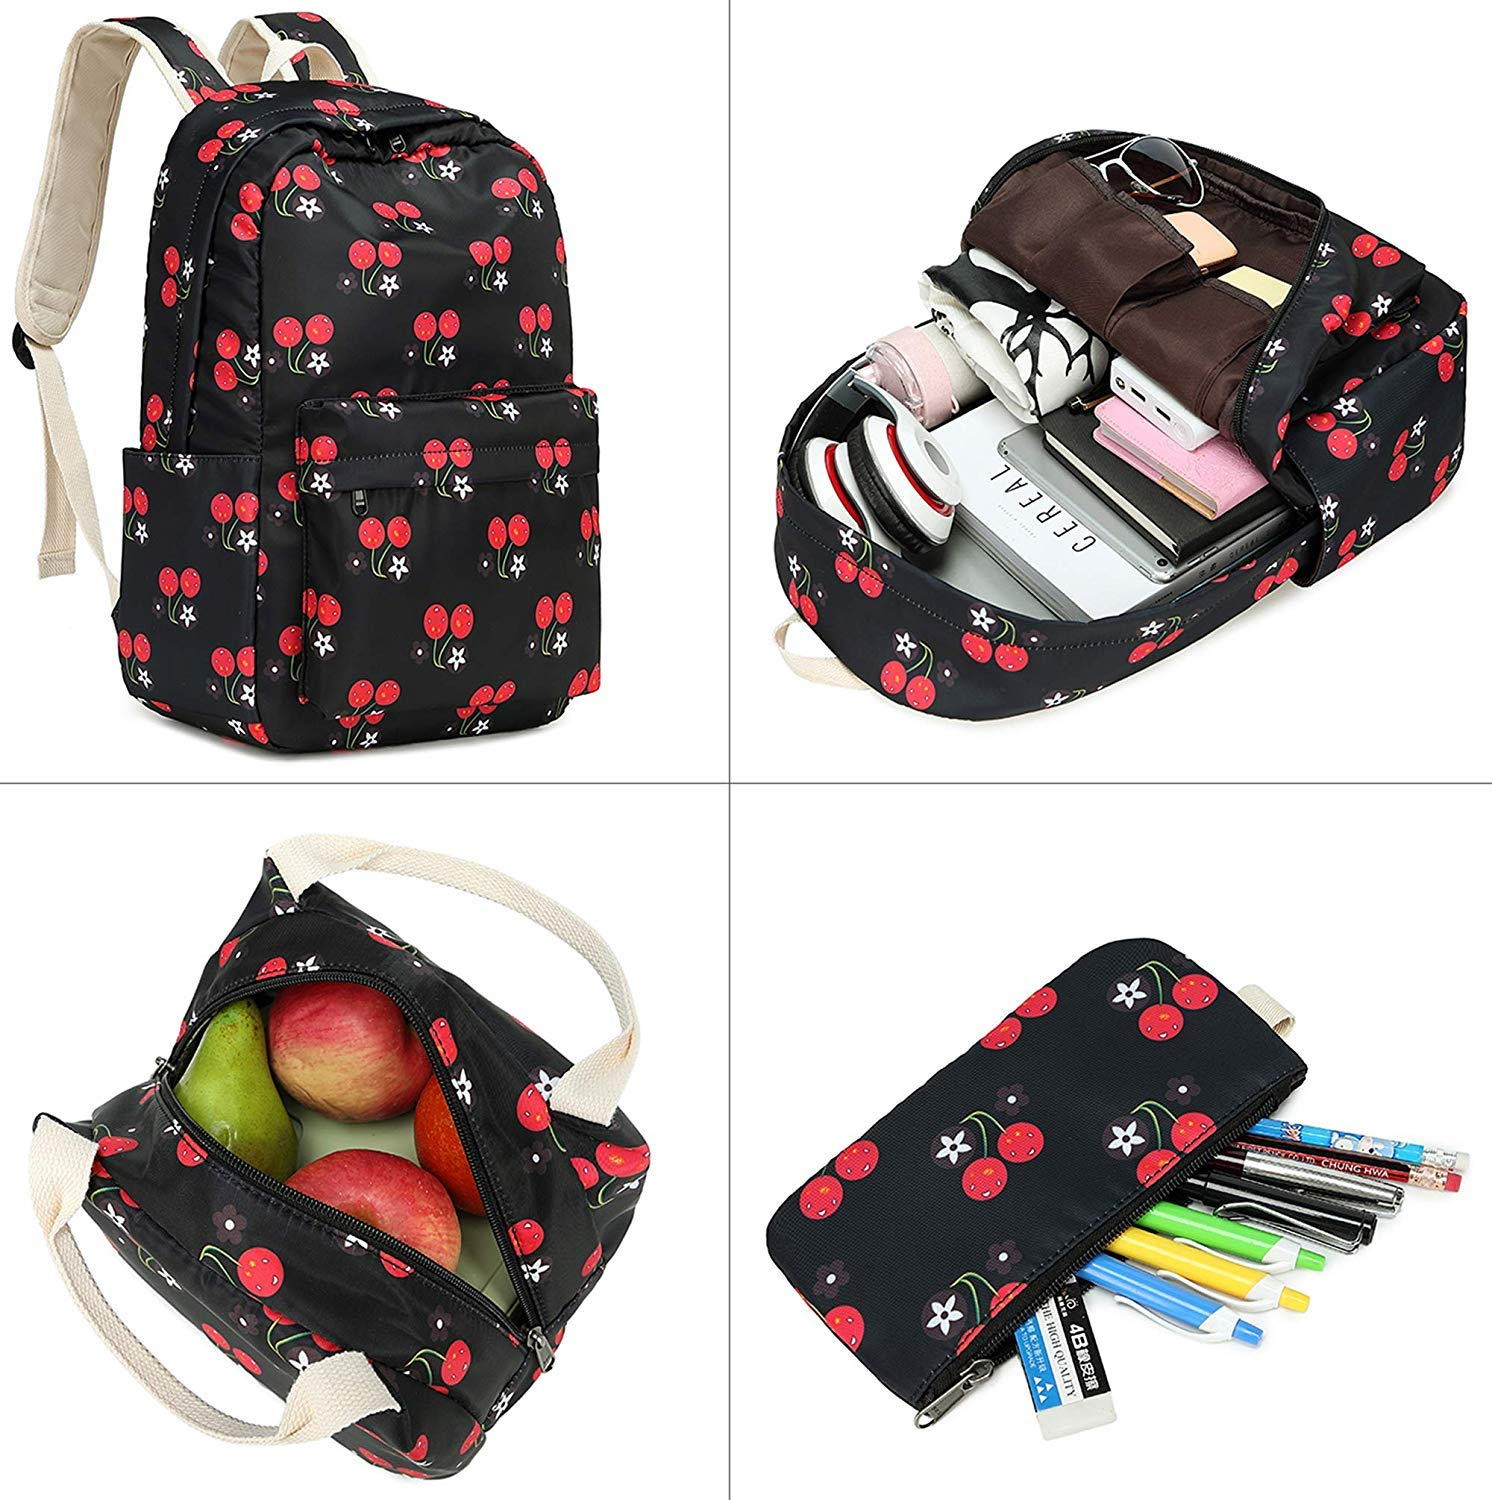 School Backpack for Girl, Causal Book Bag for Teens, Lightweight Travel Backpack with Lunch Bag, 15.6 inch Laptop Bag - Cute Cherry Bag by FLYMEI (Image #2)